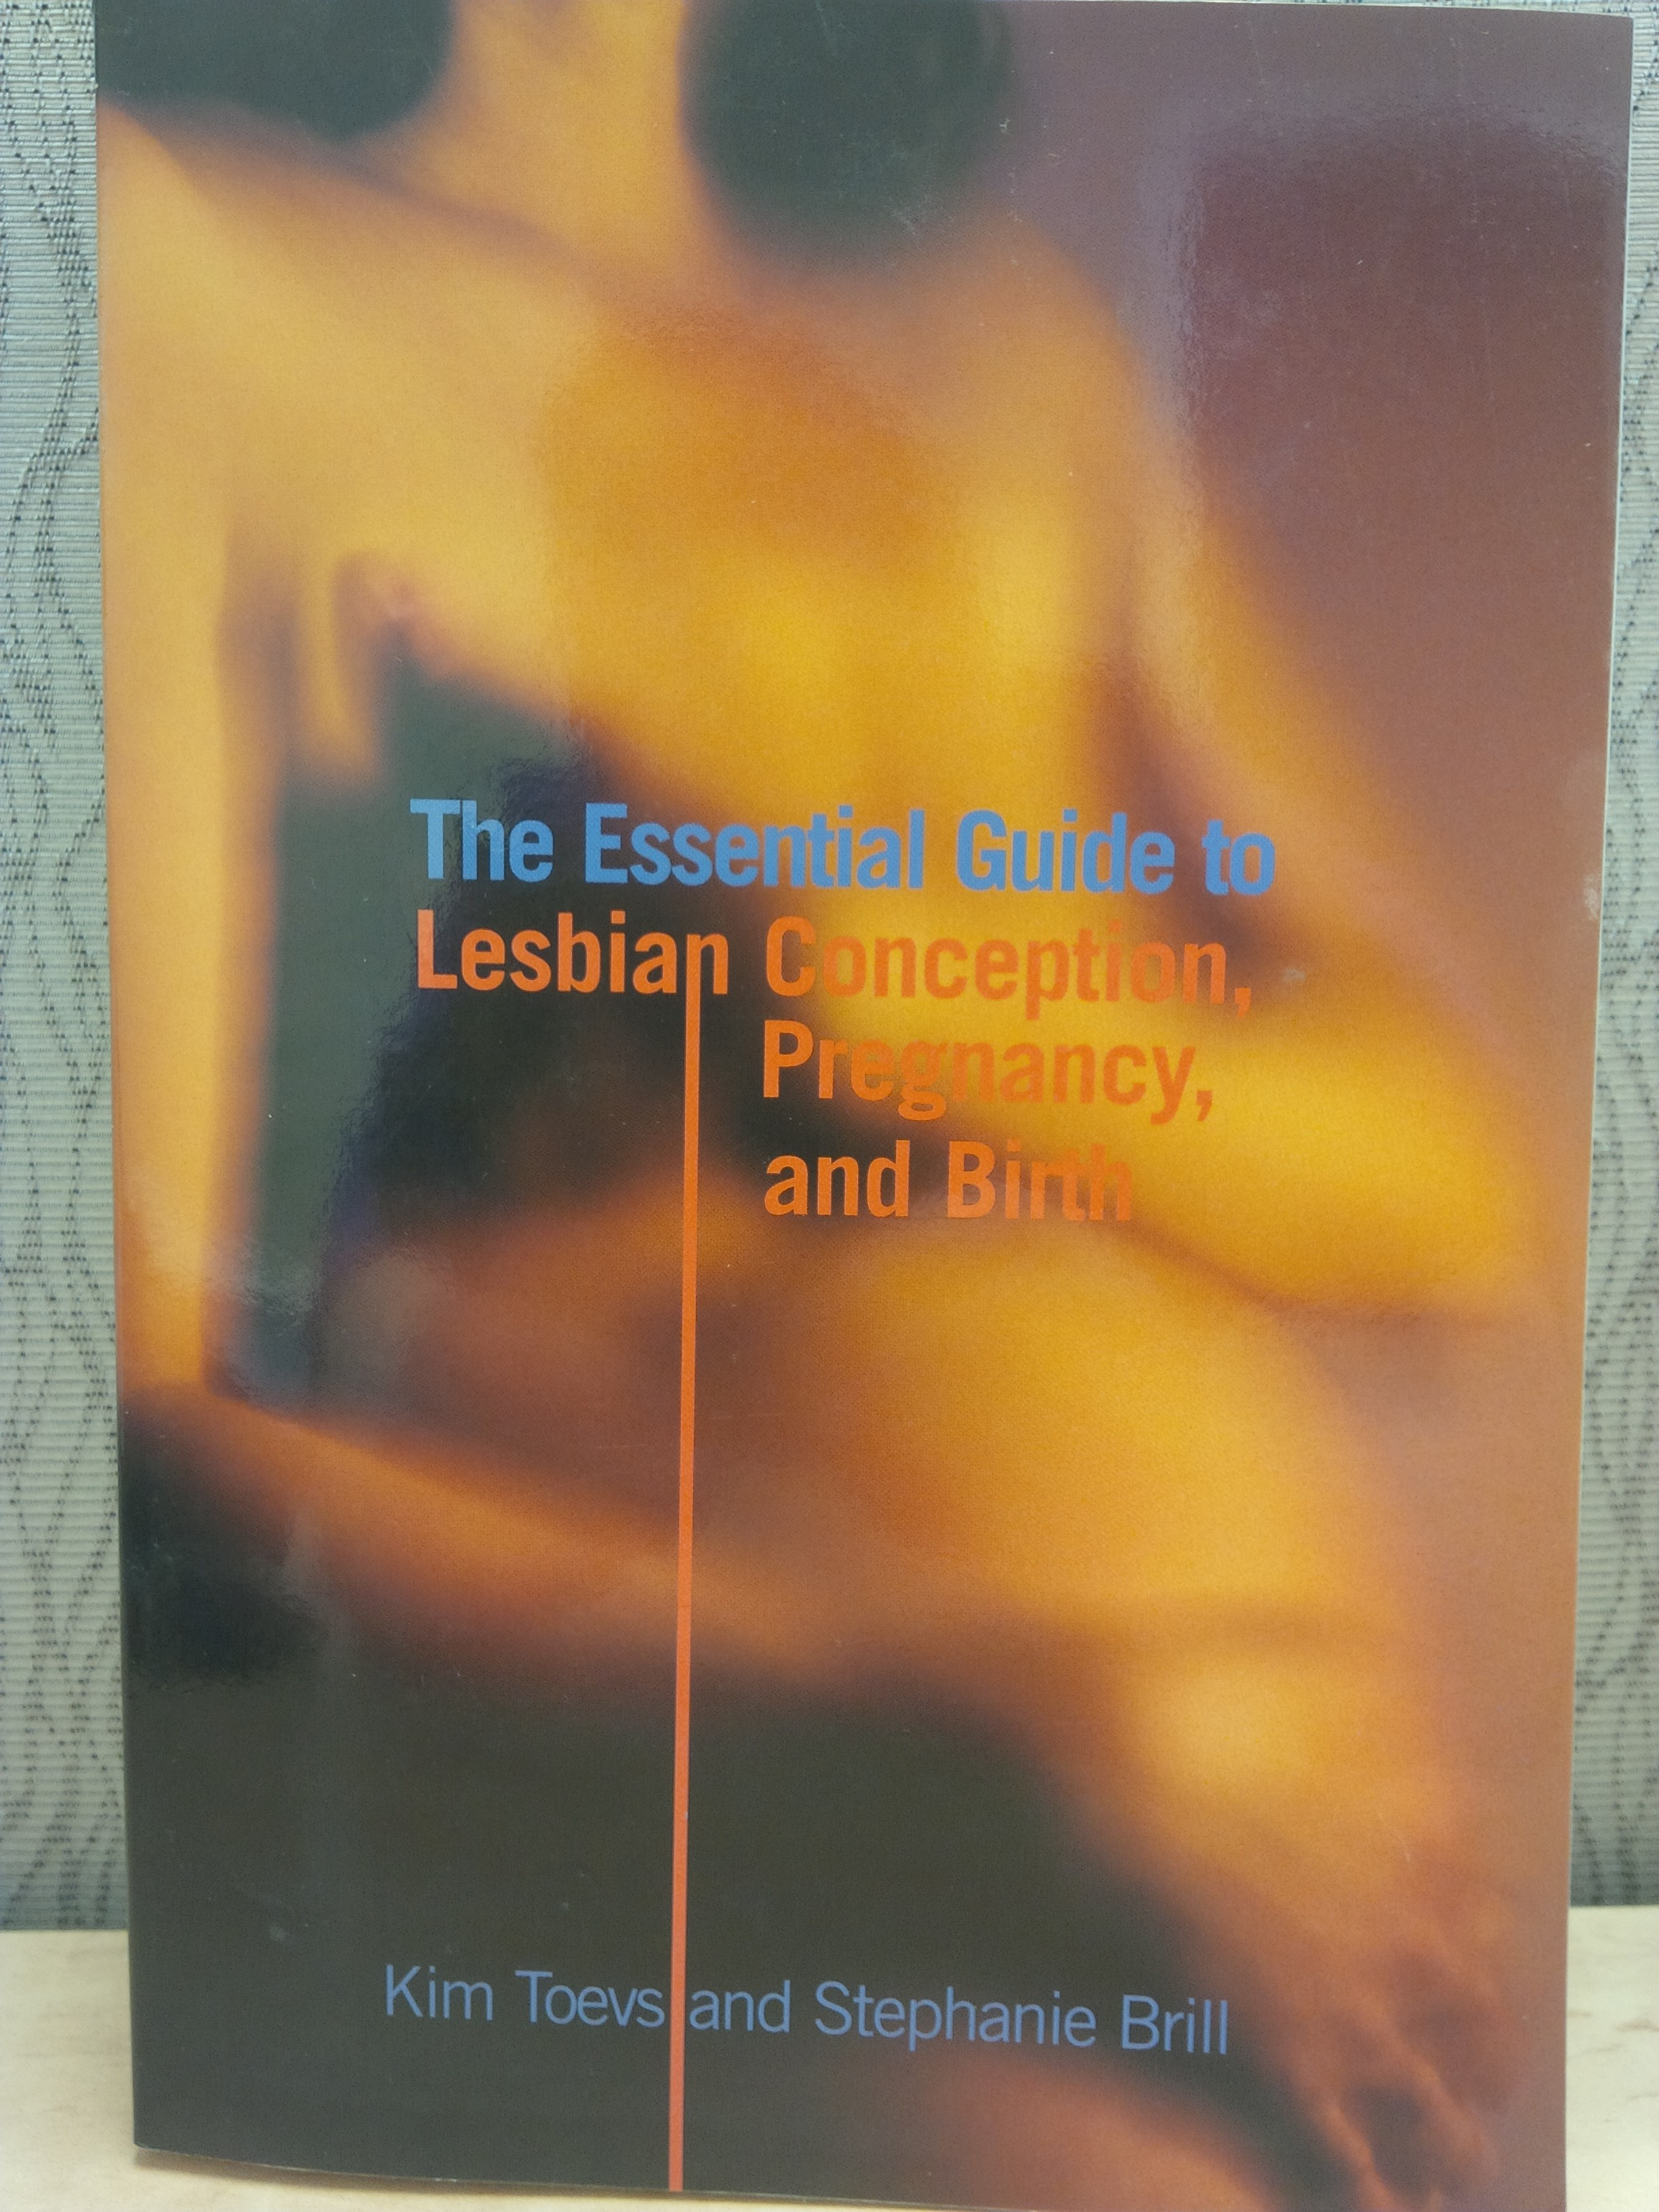 The Essential Guide to Lesbian Conception, Pregnancy, and Birth